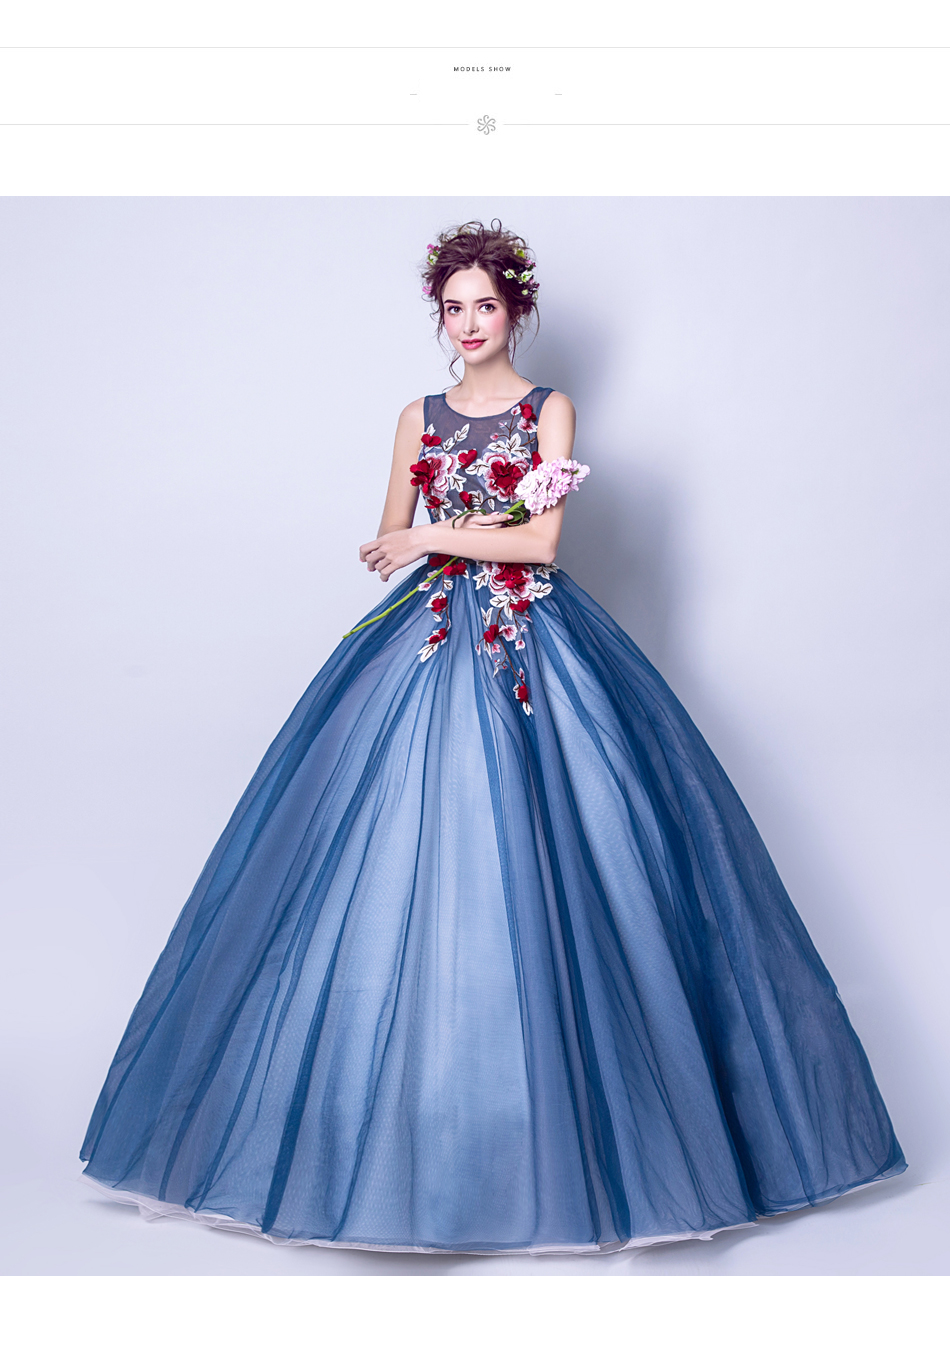 Angel Wedding Dress Marriage Evening Bride Party Prom Bridal Gown Vestido De Noiva Blue camouflage, fantasy flowers 2017 7572 9